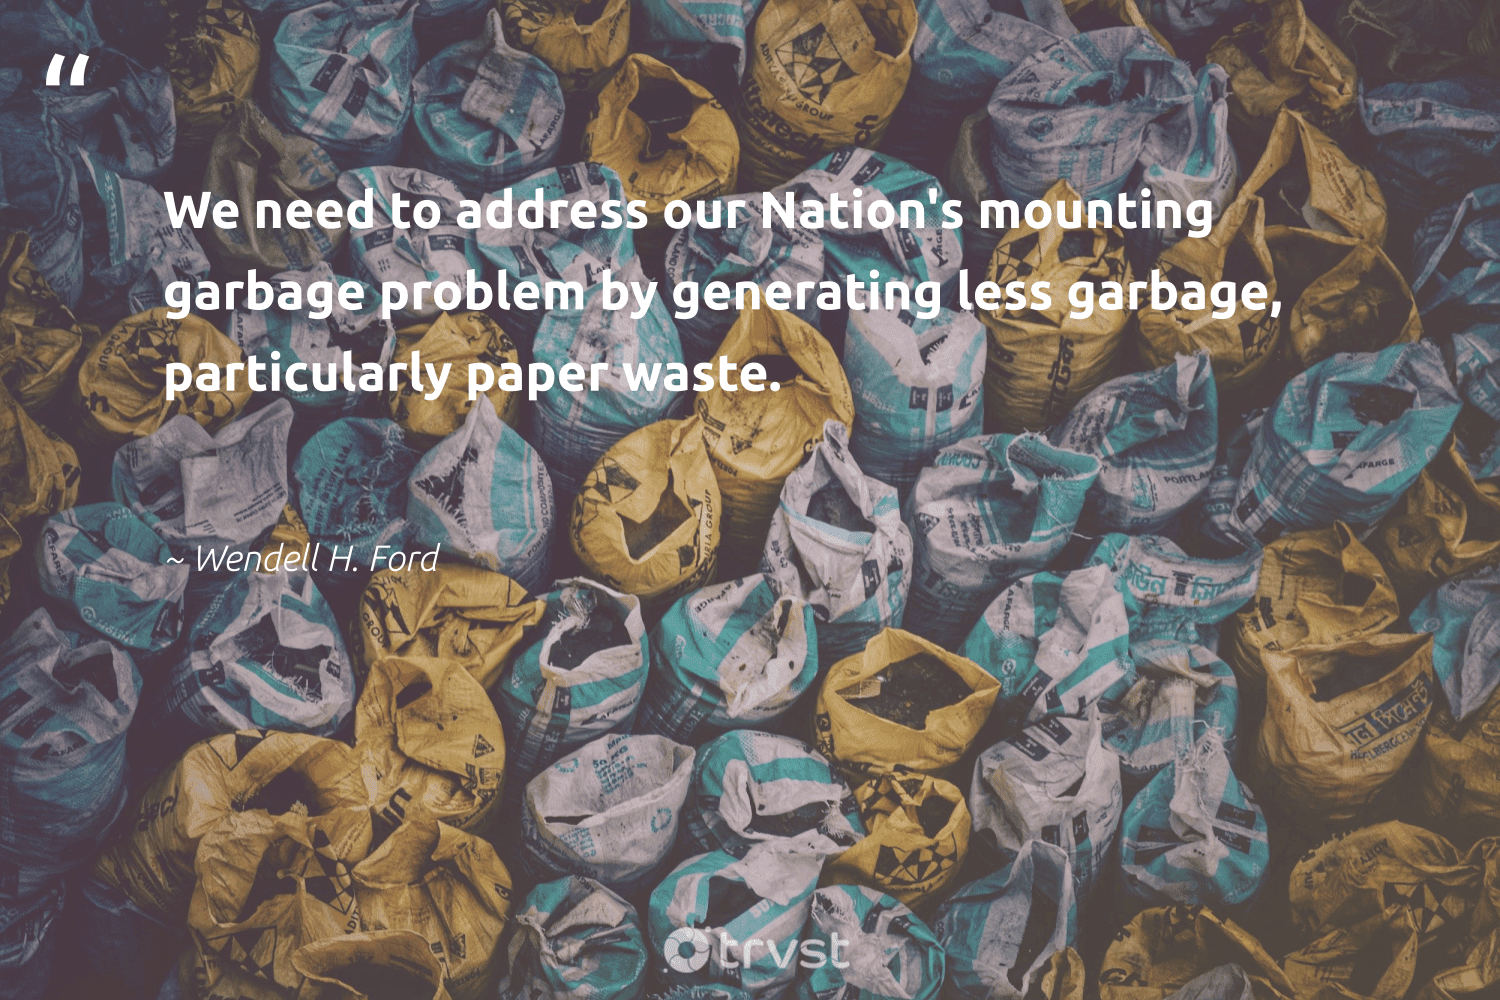 """""""We need to address our Nation's mounting garbage problem by generating less garbage, particularly paper waste.""""  - Wendell H. Ford #trvst #quotes #waste #garbage #dotherightthing #dosomething #dogood #bethechange #gogreen #impact #sustainableliving #socialchange"""